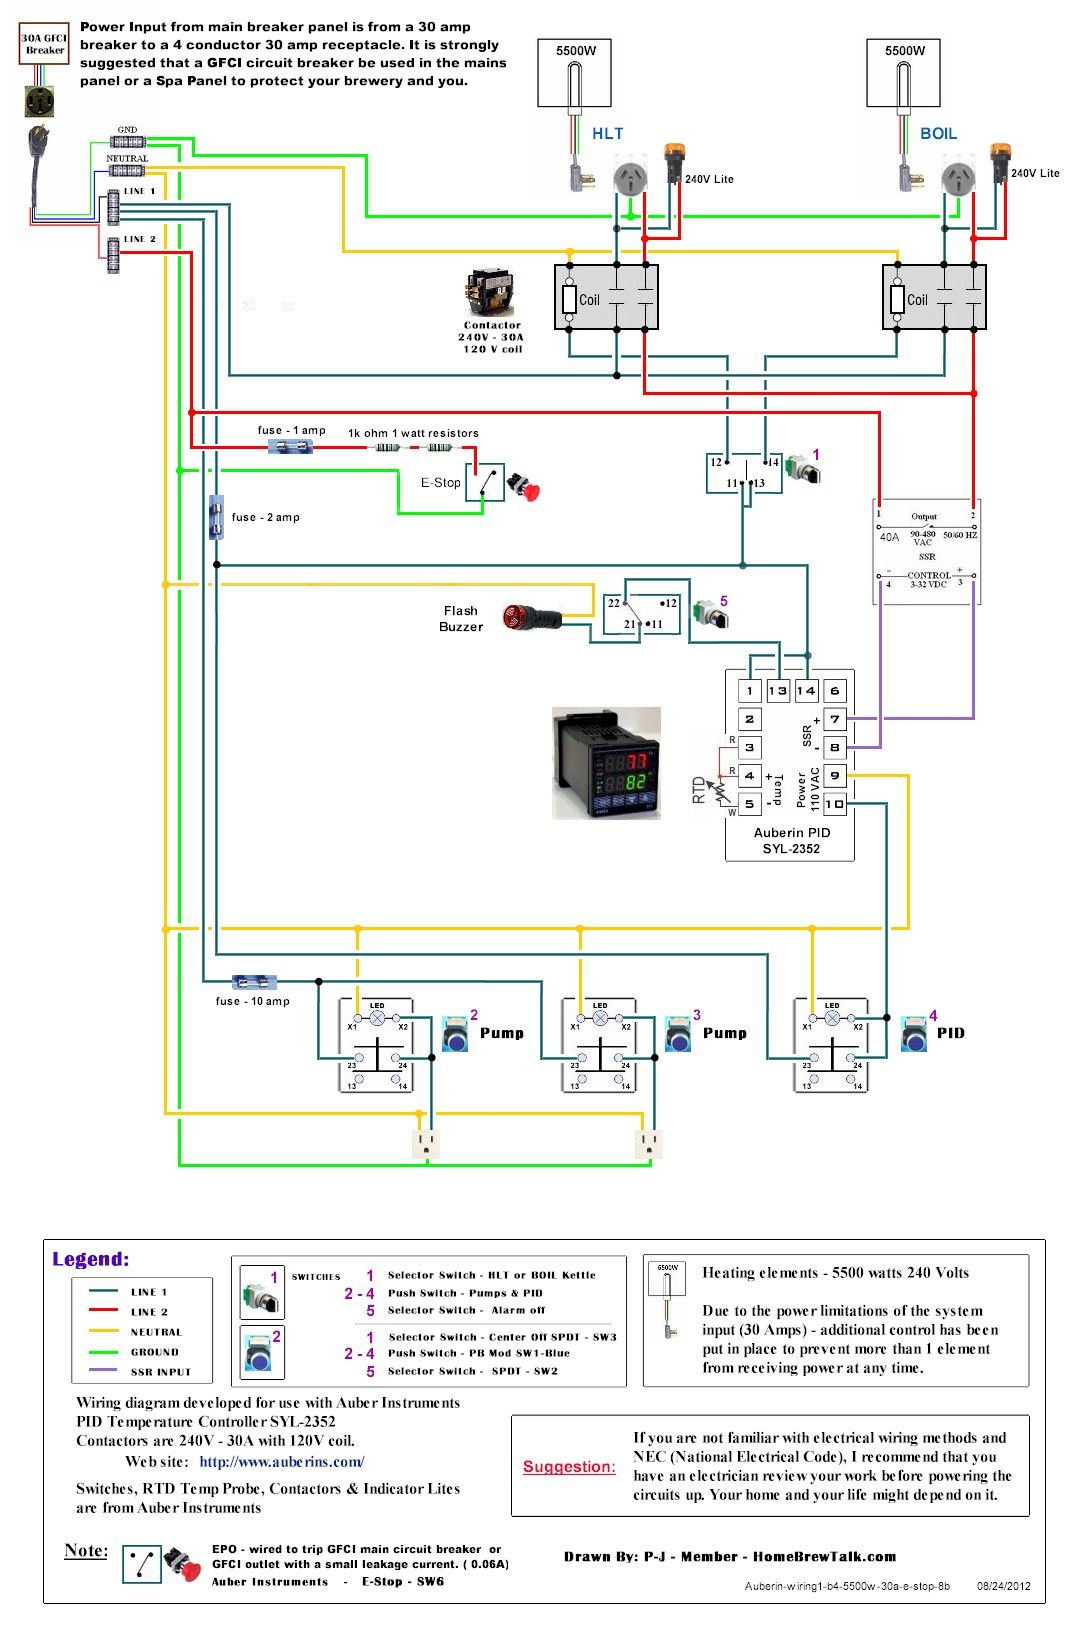 sukup 220v wiring diagram 220v 30a wiring diagram help - page 2 - home brew forums ...